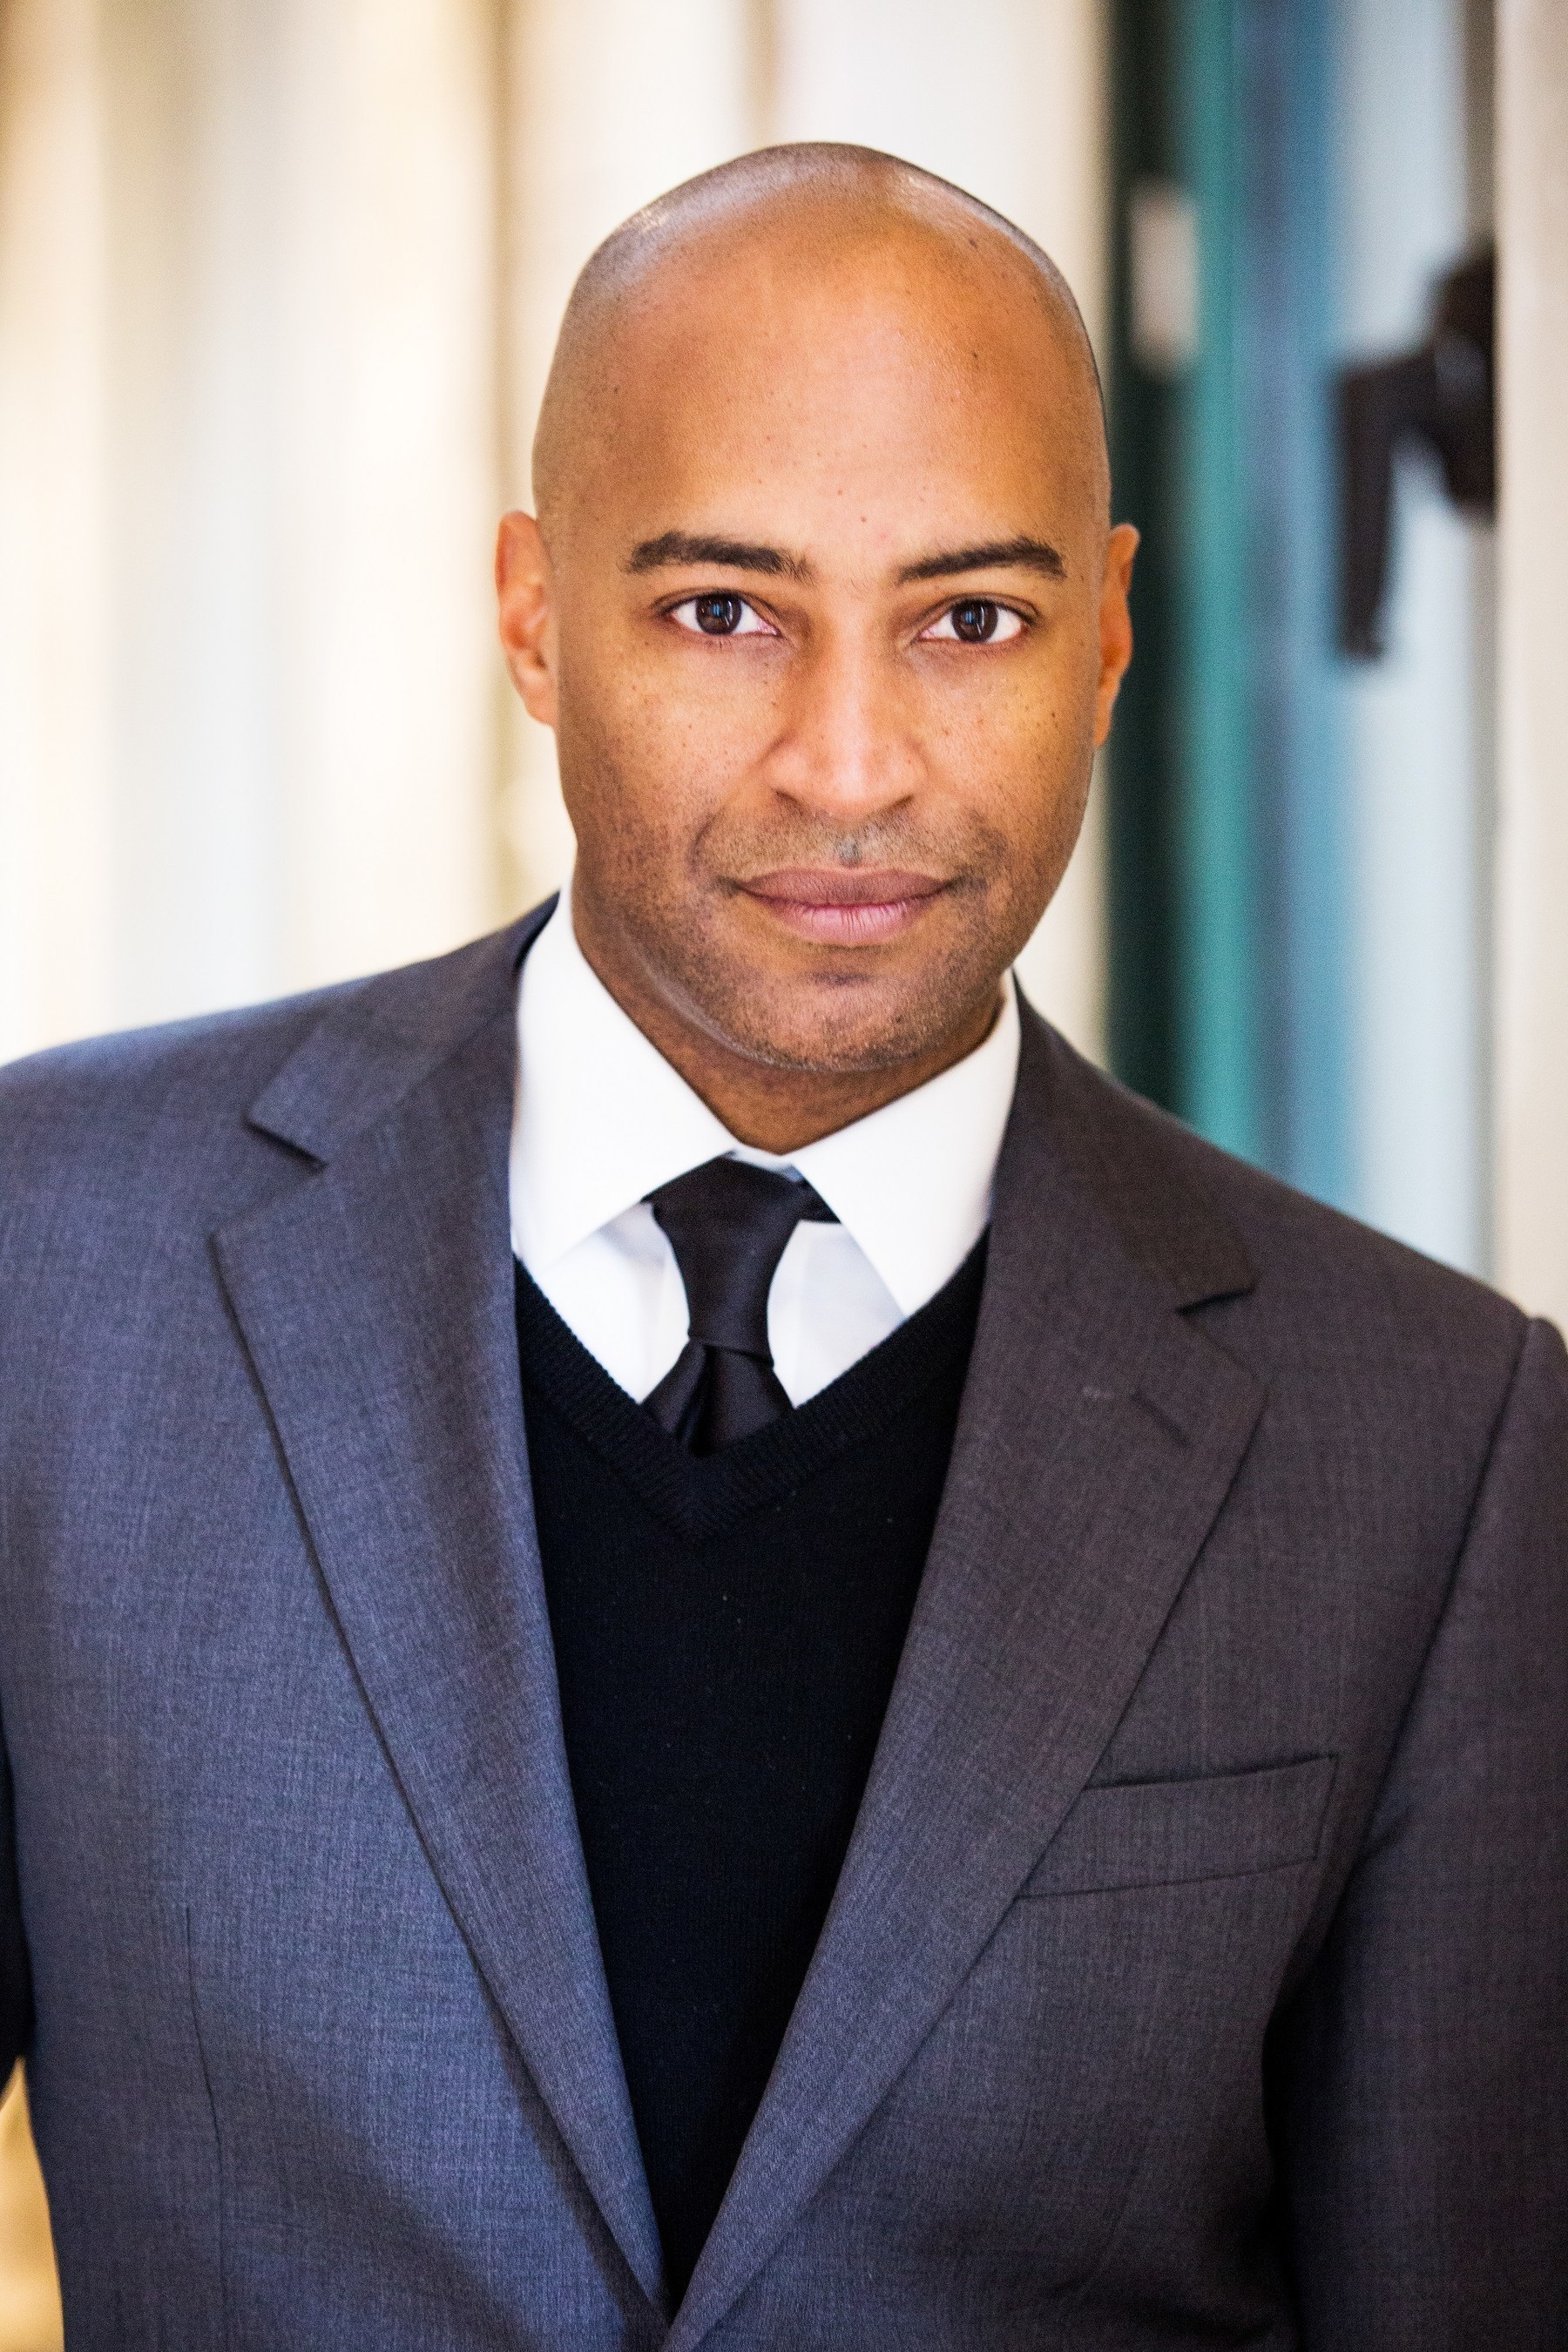 Panasonic General Counsel Damien Atkins Named to Savoy Magazine's 2016 'Top 100 Most Influential Blacks in Corporate America' List